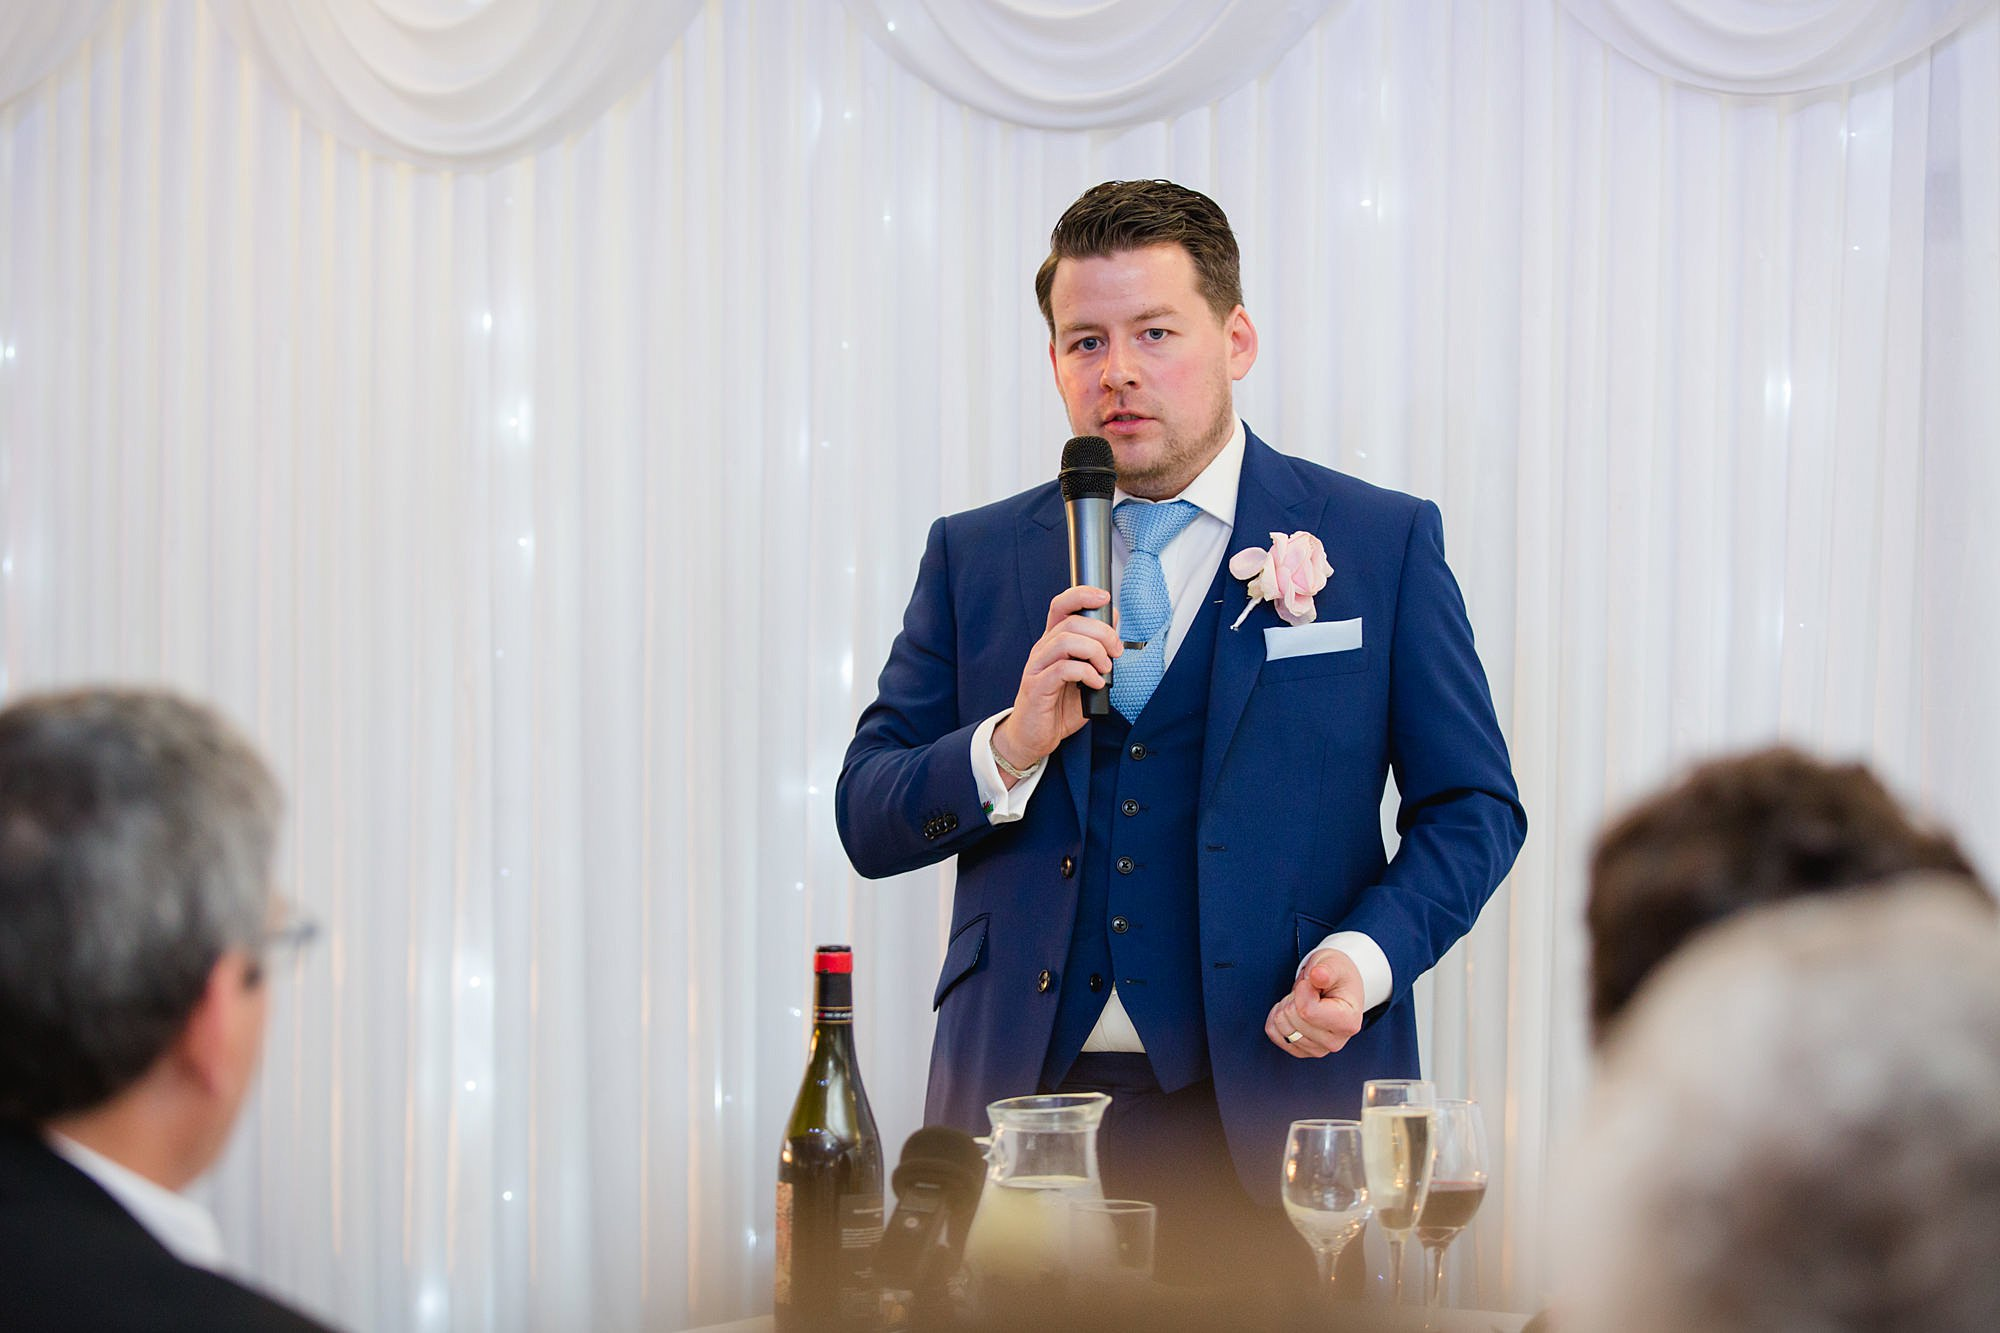 Bank of England Sports Centre wedding groom gives a speech